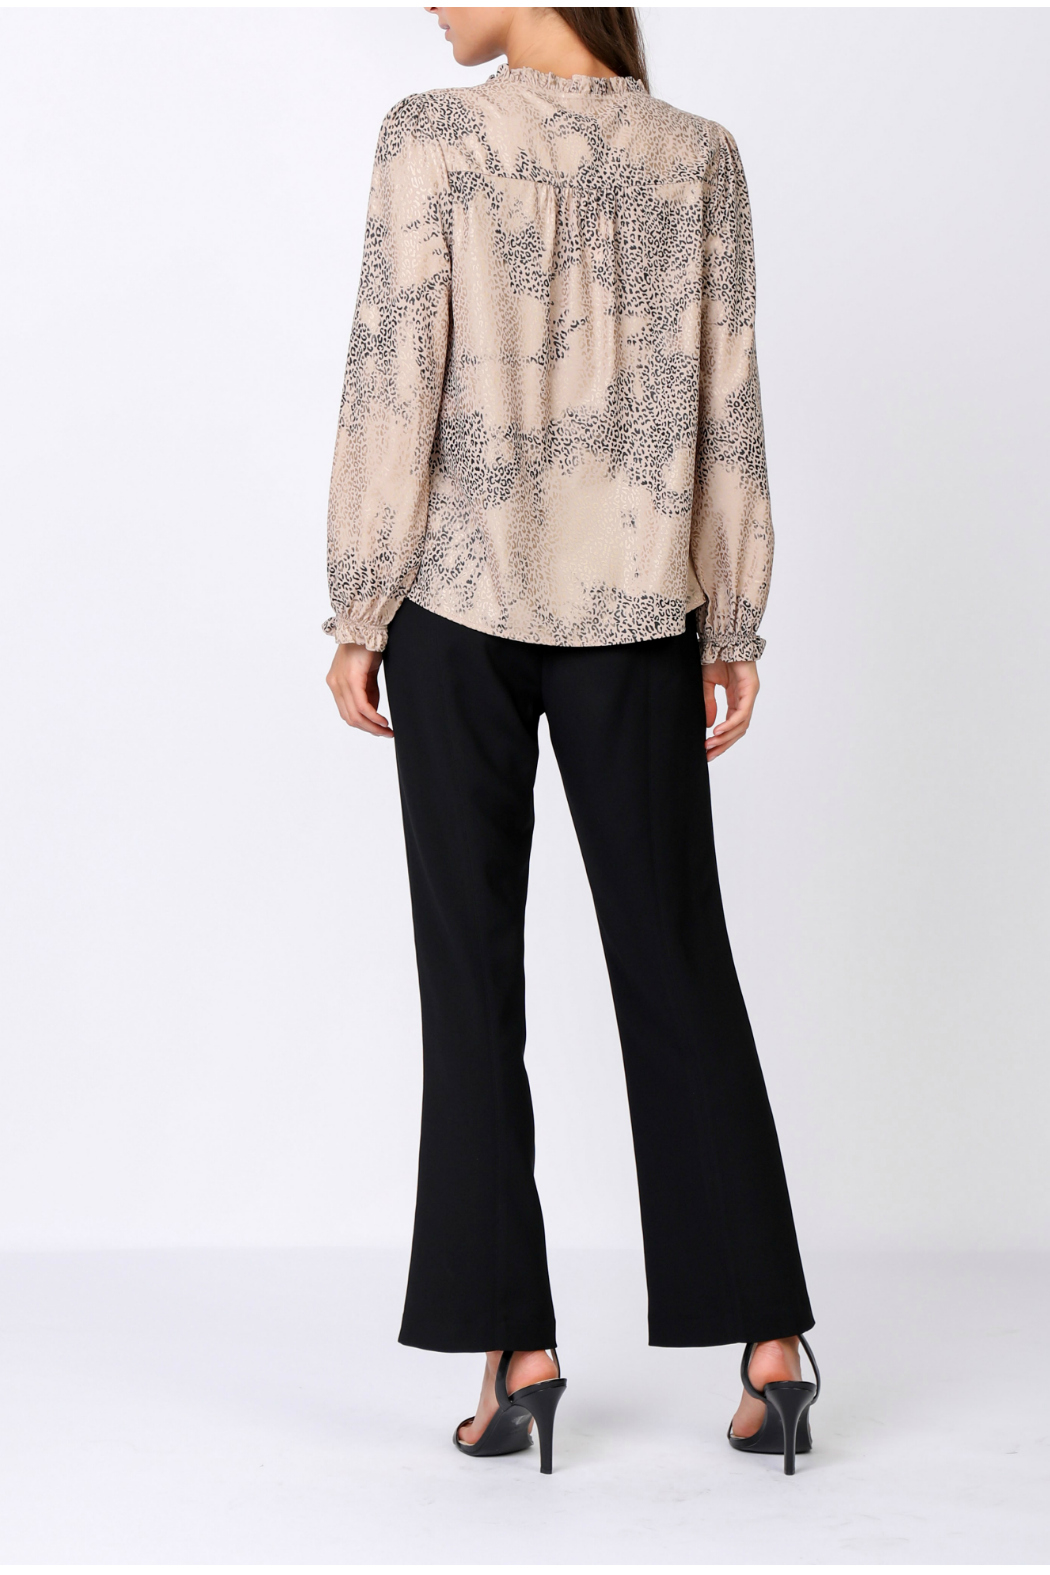 Current Air Leopard print blouse - Front Full Image